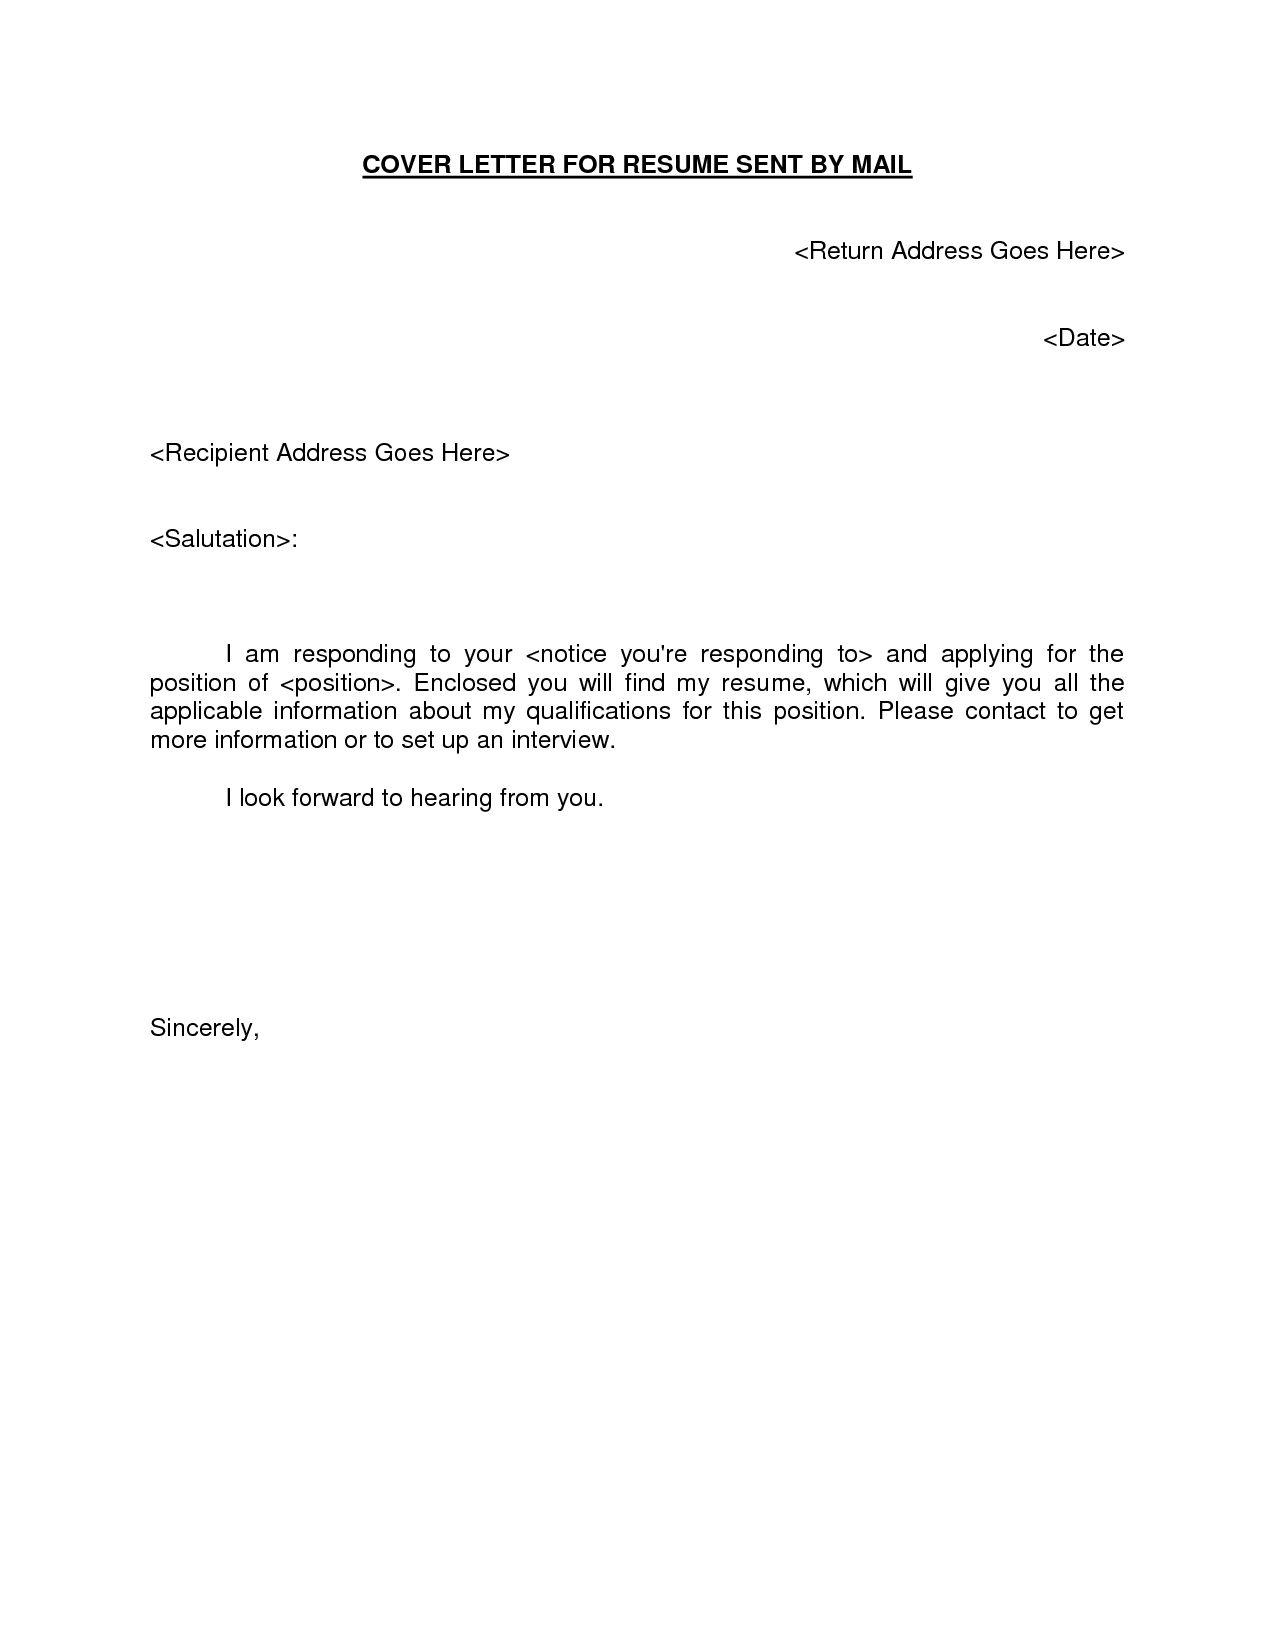 25 Email Cover Letter In 2020 Cover Letter For Resume Email Cover Letter Cover Letter Example